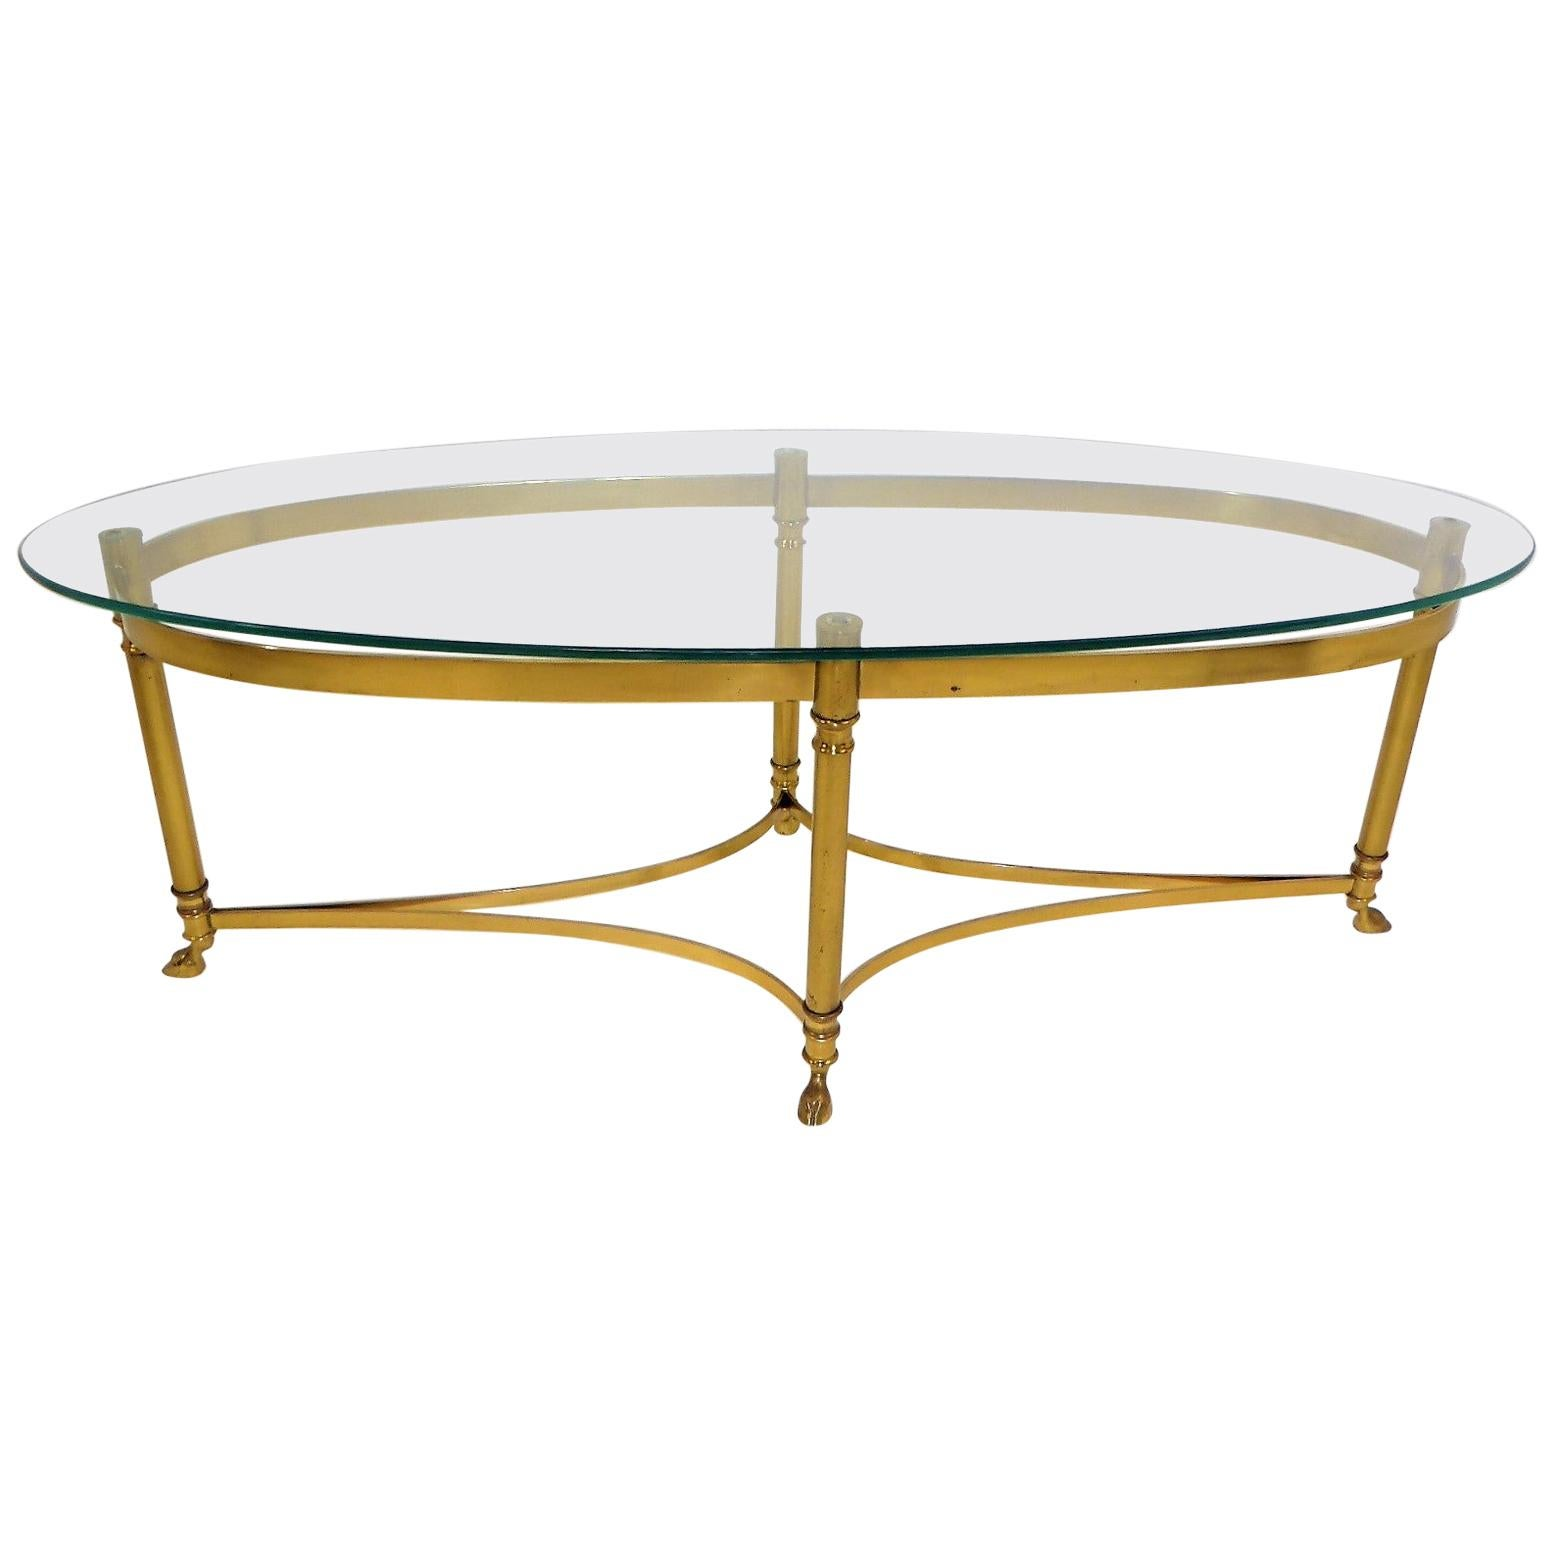 Classic 1970s Hollywood Regency Labarge Brass Hooved Foot Coffee Table